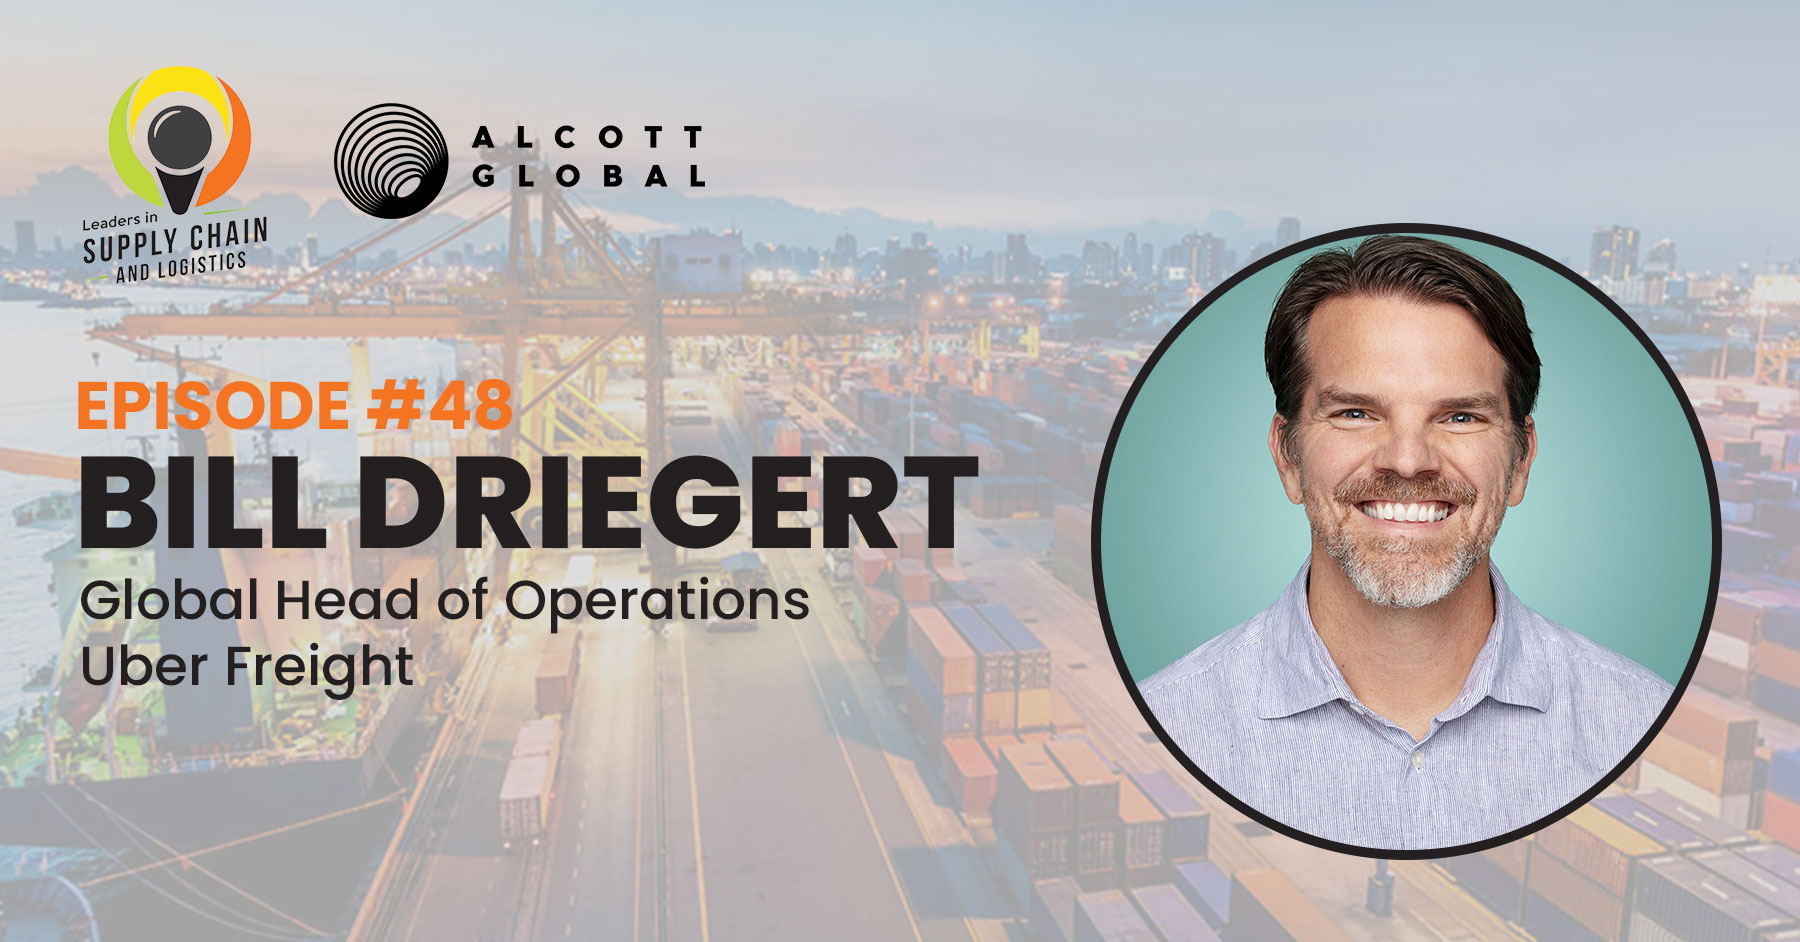 #48: Bill Driegert Global Head of Operations of Uber Freight Featured Image